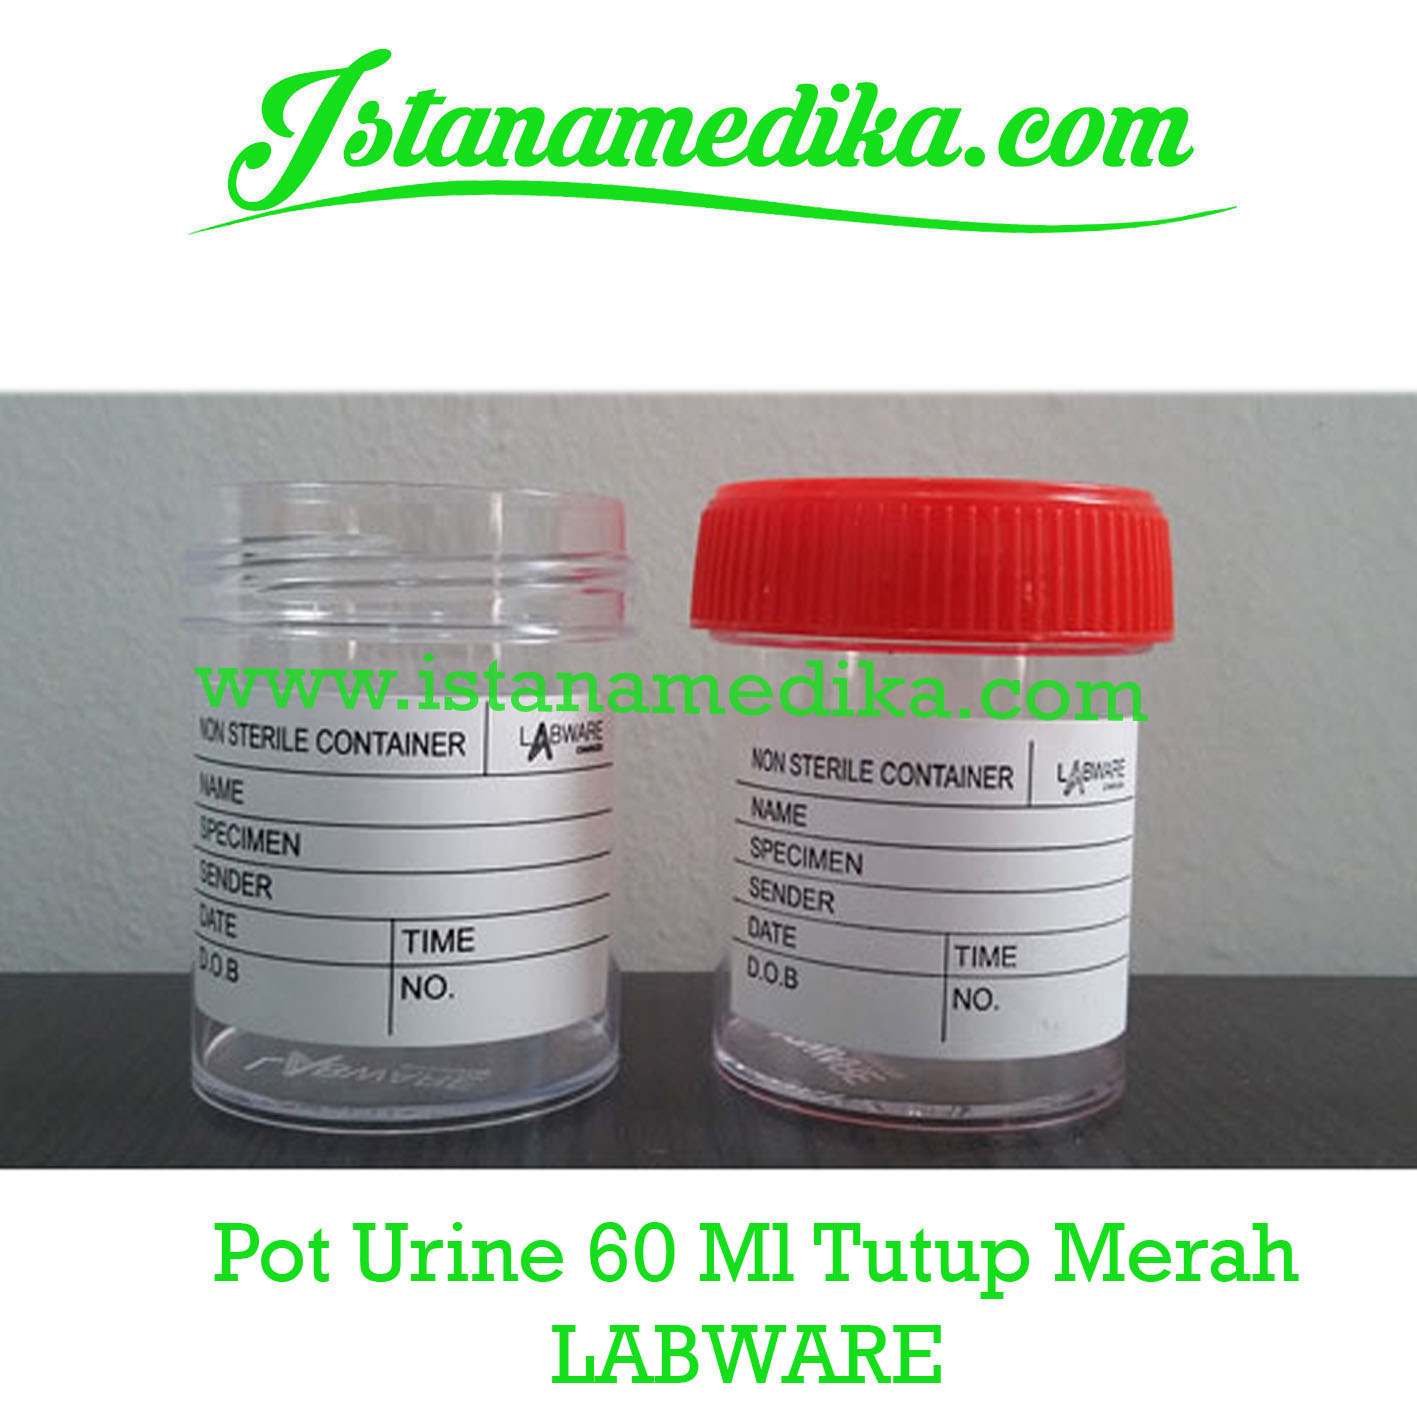 Pot Urine 60 Ml Tutup Merah LABWARE